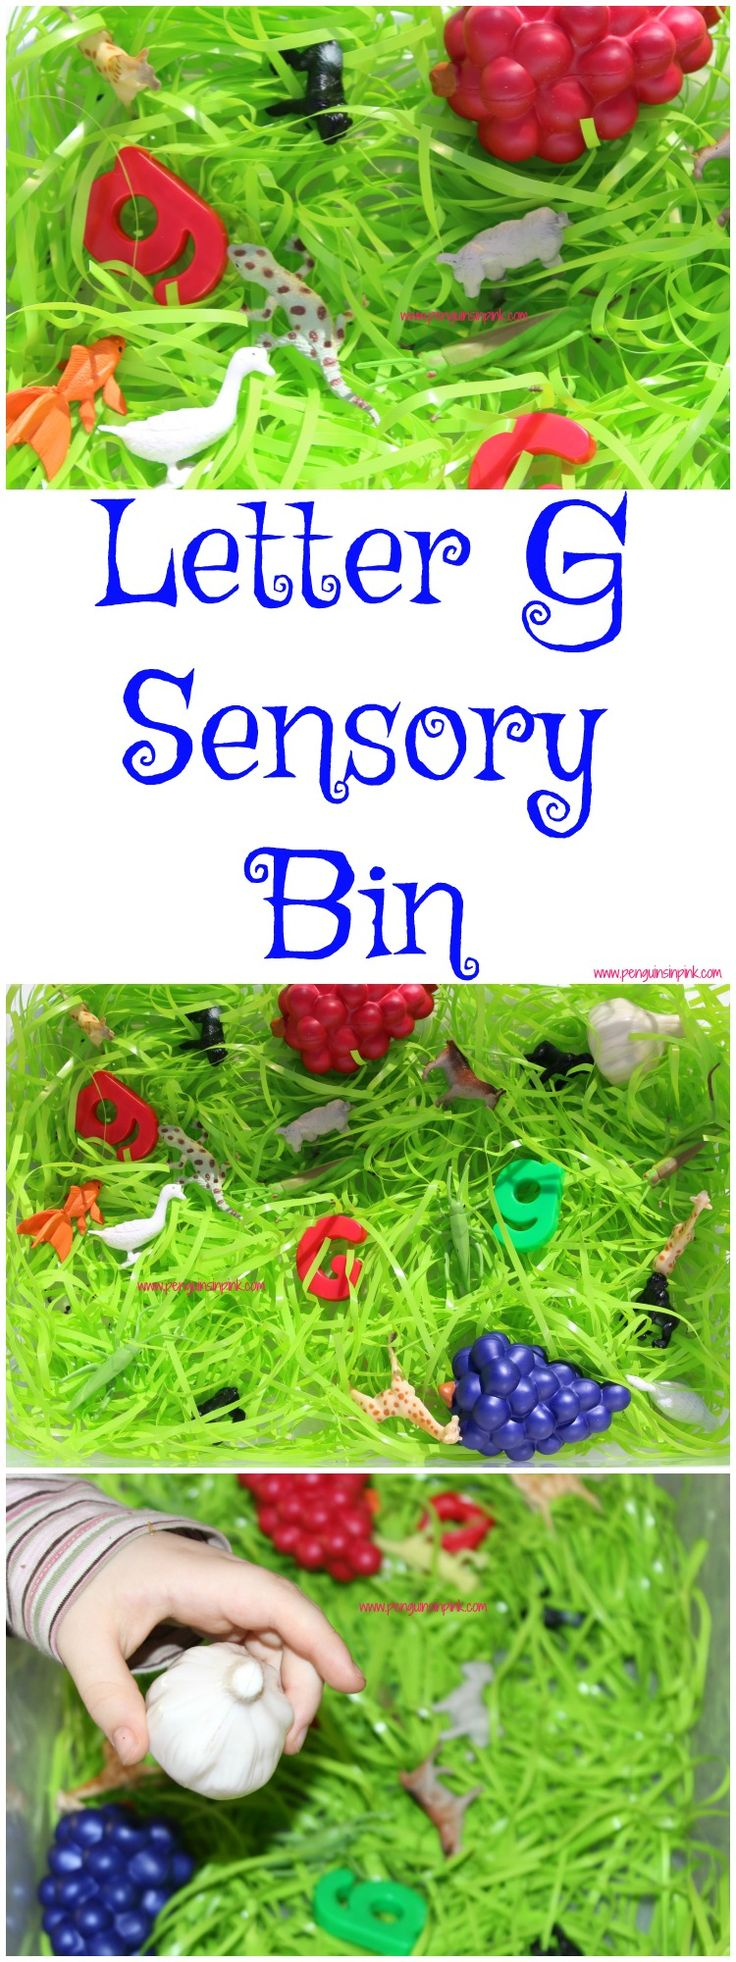 """Letter G Sensory Bin - This sensory bin has it all giraffes, gorillas, geckos, geese, and other items beginning with letter """"G""""."""